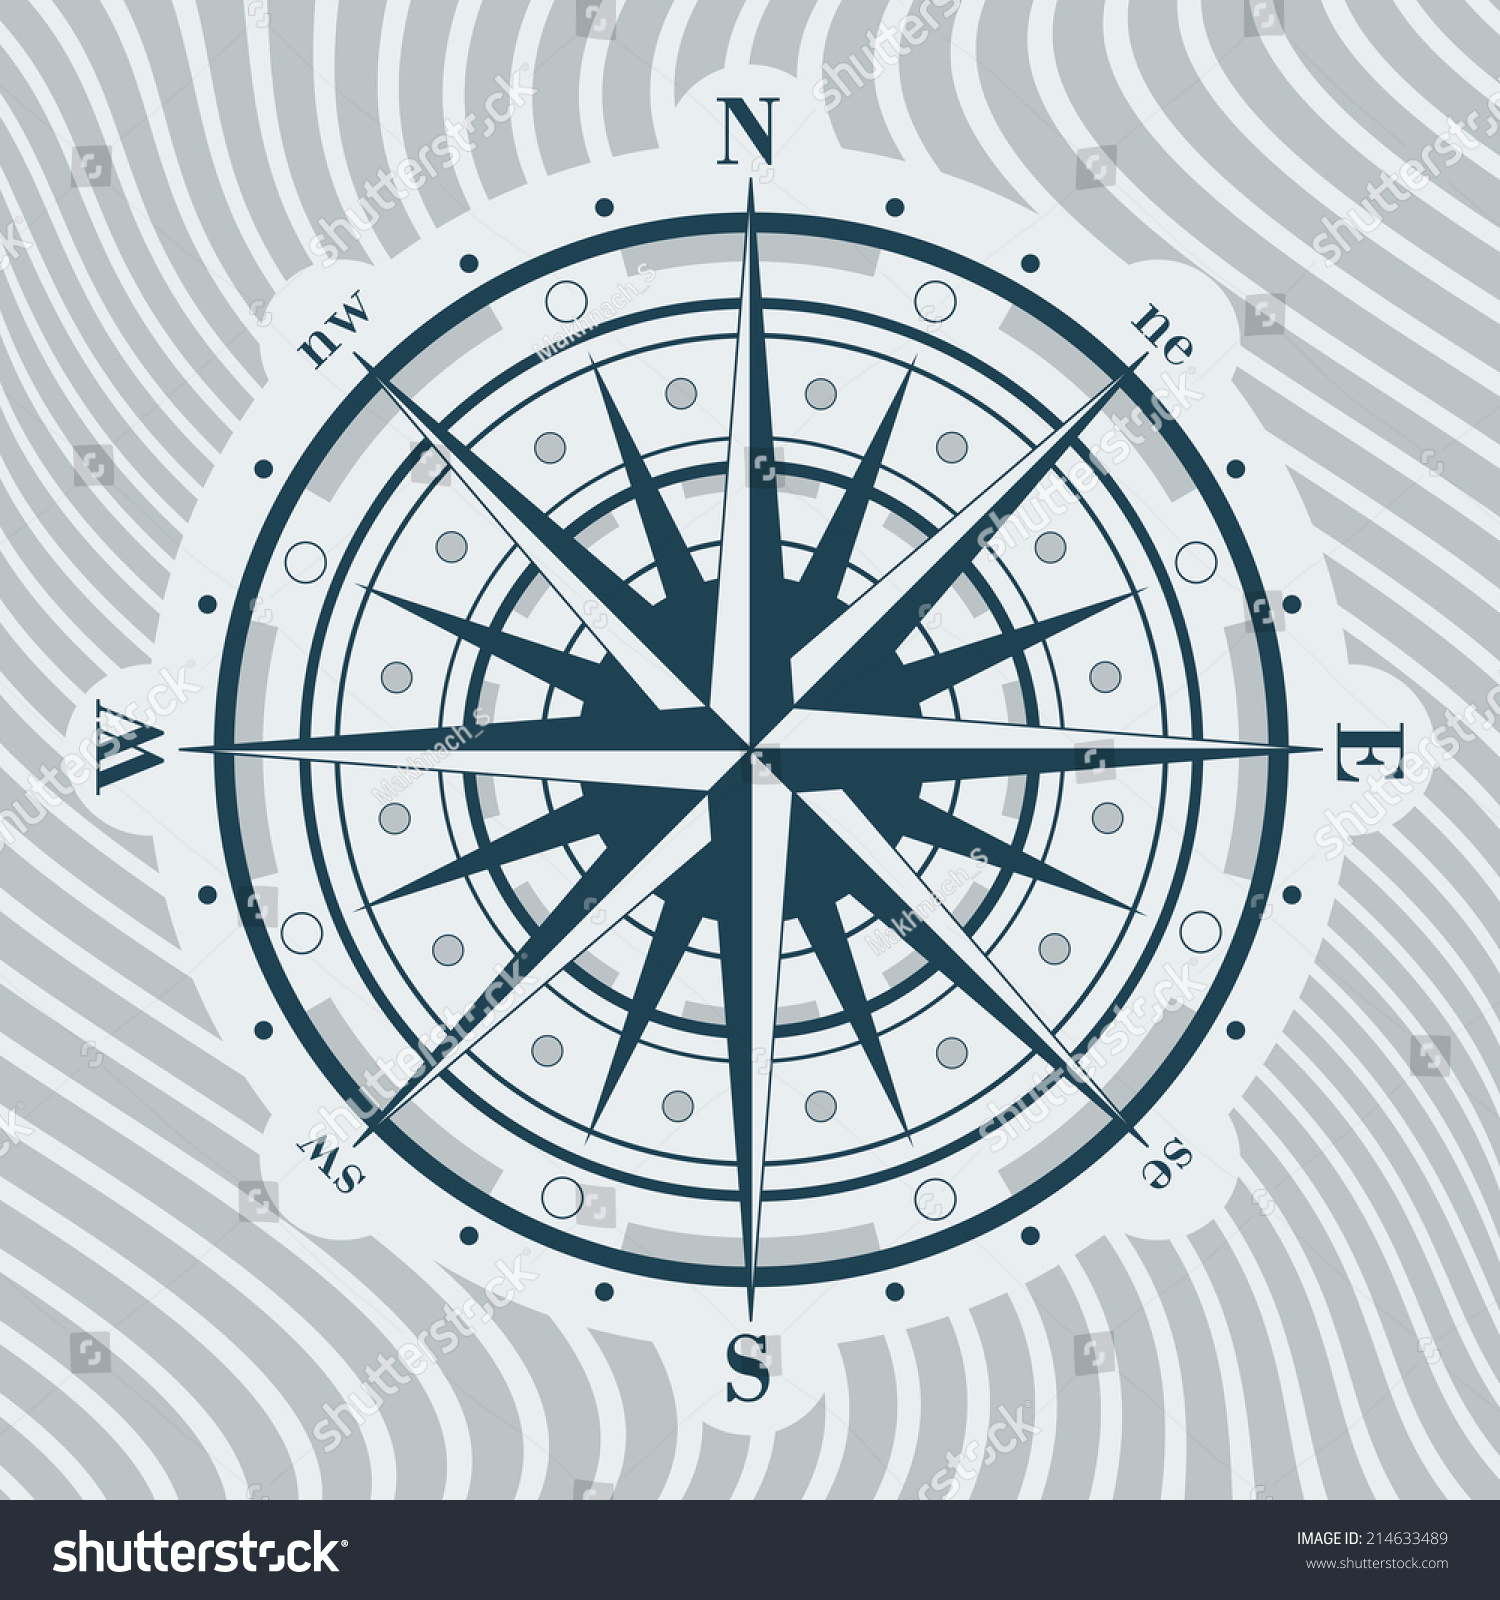 Compass Rose Over Wavy Background Vector Stock Royalty Free 360 Degree Diagram Illustration